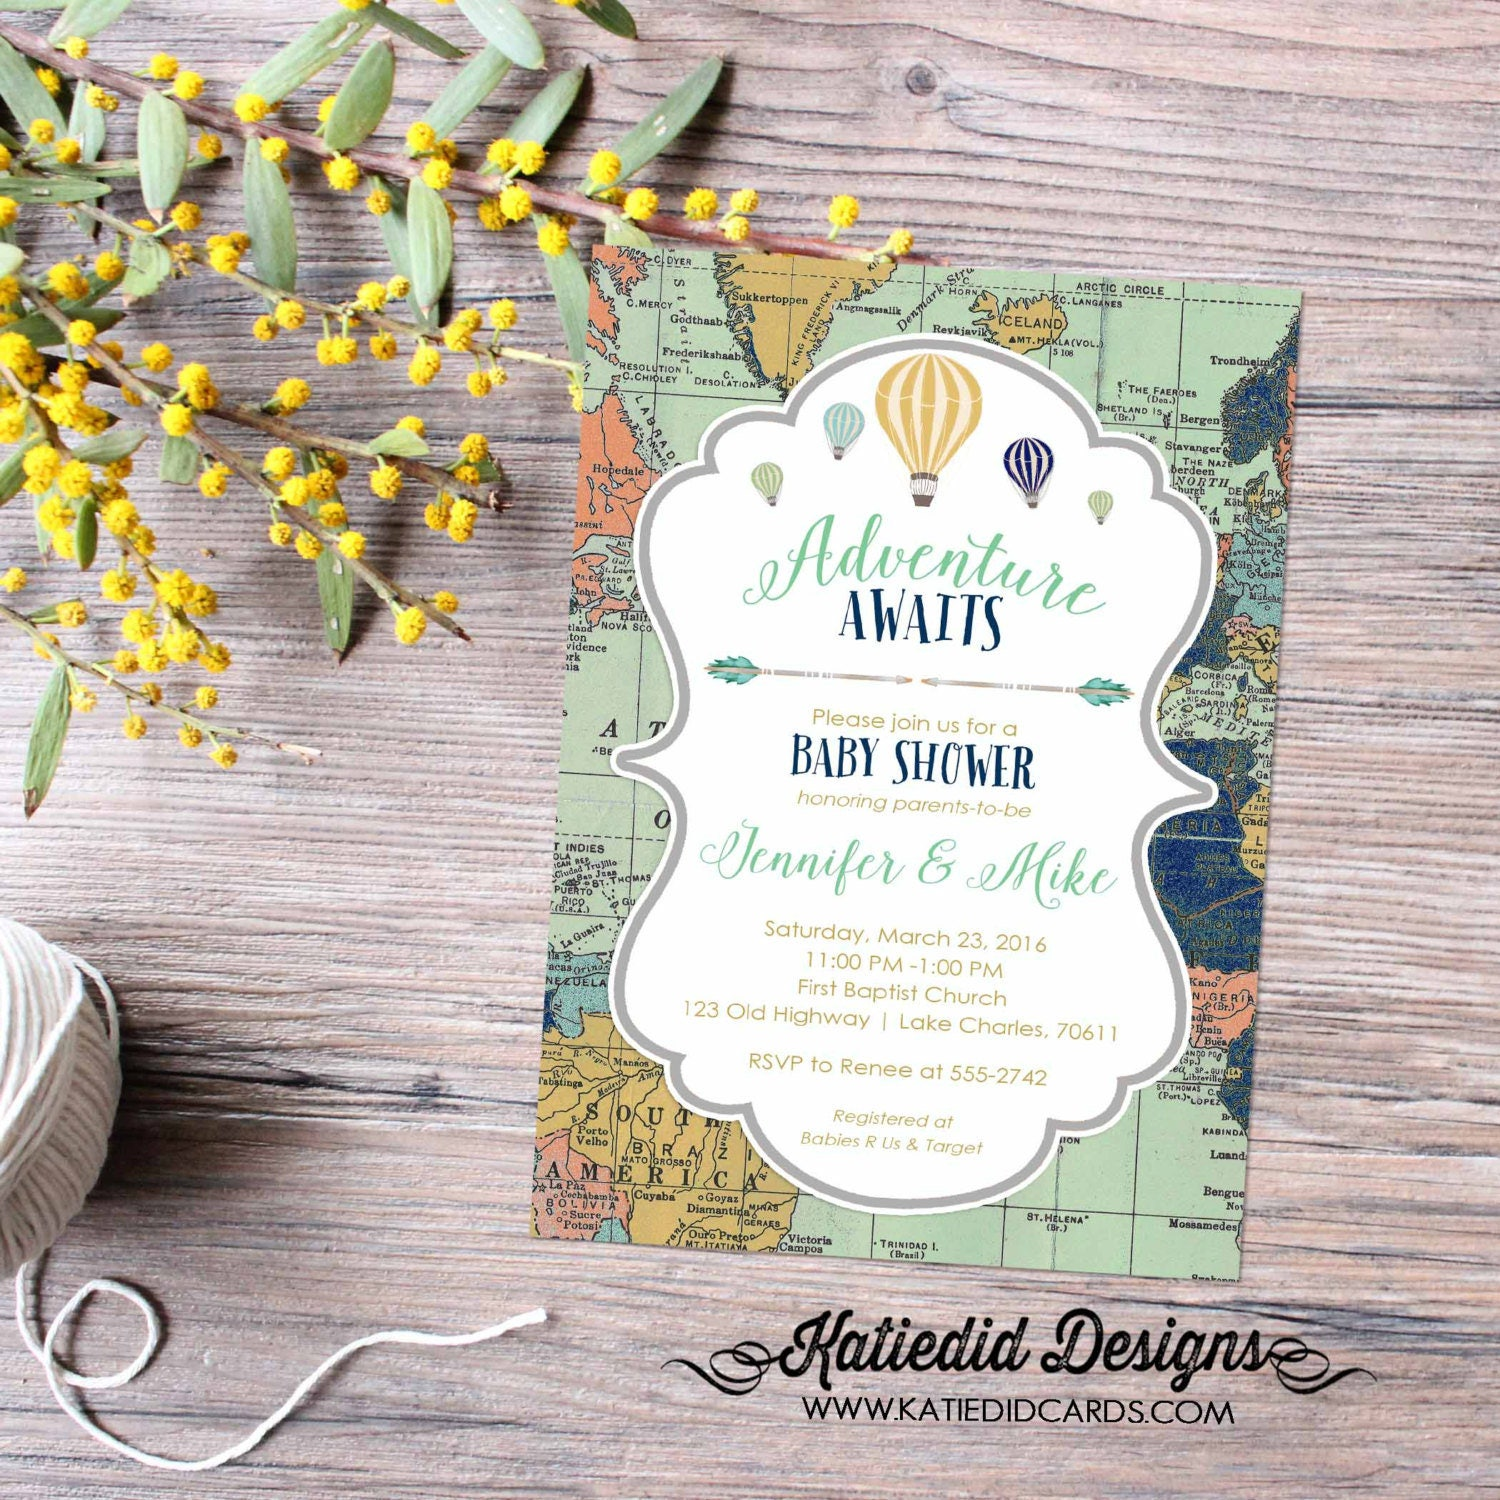 Travel themed baby shower invitation hot air balloon adventure travel themed baby shower invitation hot air balloon adventure awaits tribal world map birthday luncheon brunch lgbt 1466 katiedid designs filmwisefo